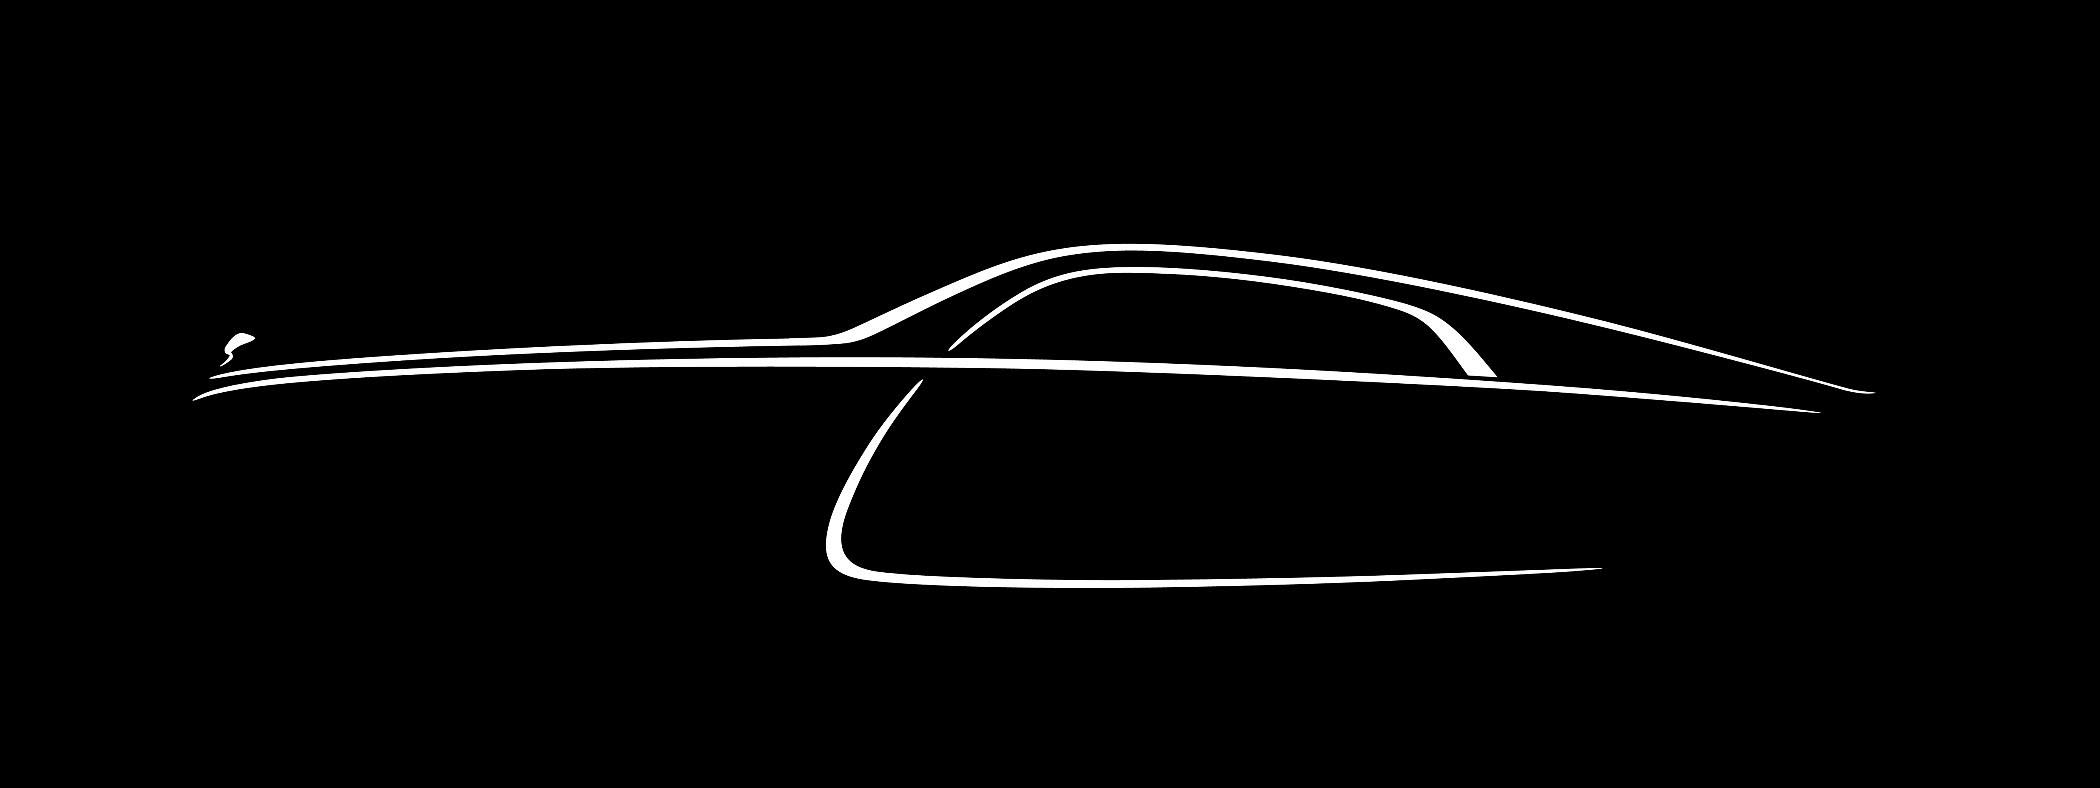 2018 Cts V >> Final 2014 Rolls-Royce Wraith Teaser Confirms Fastback Design